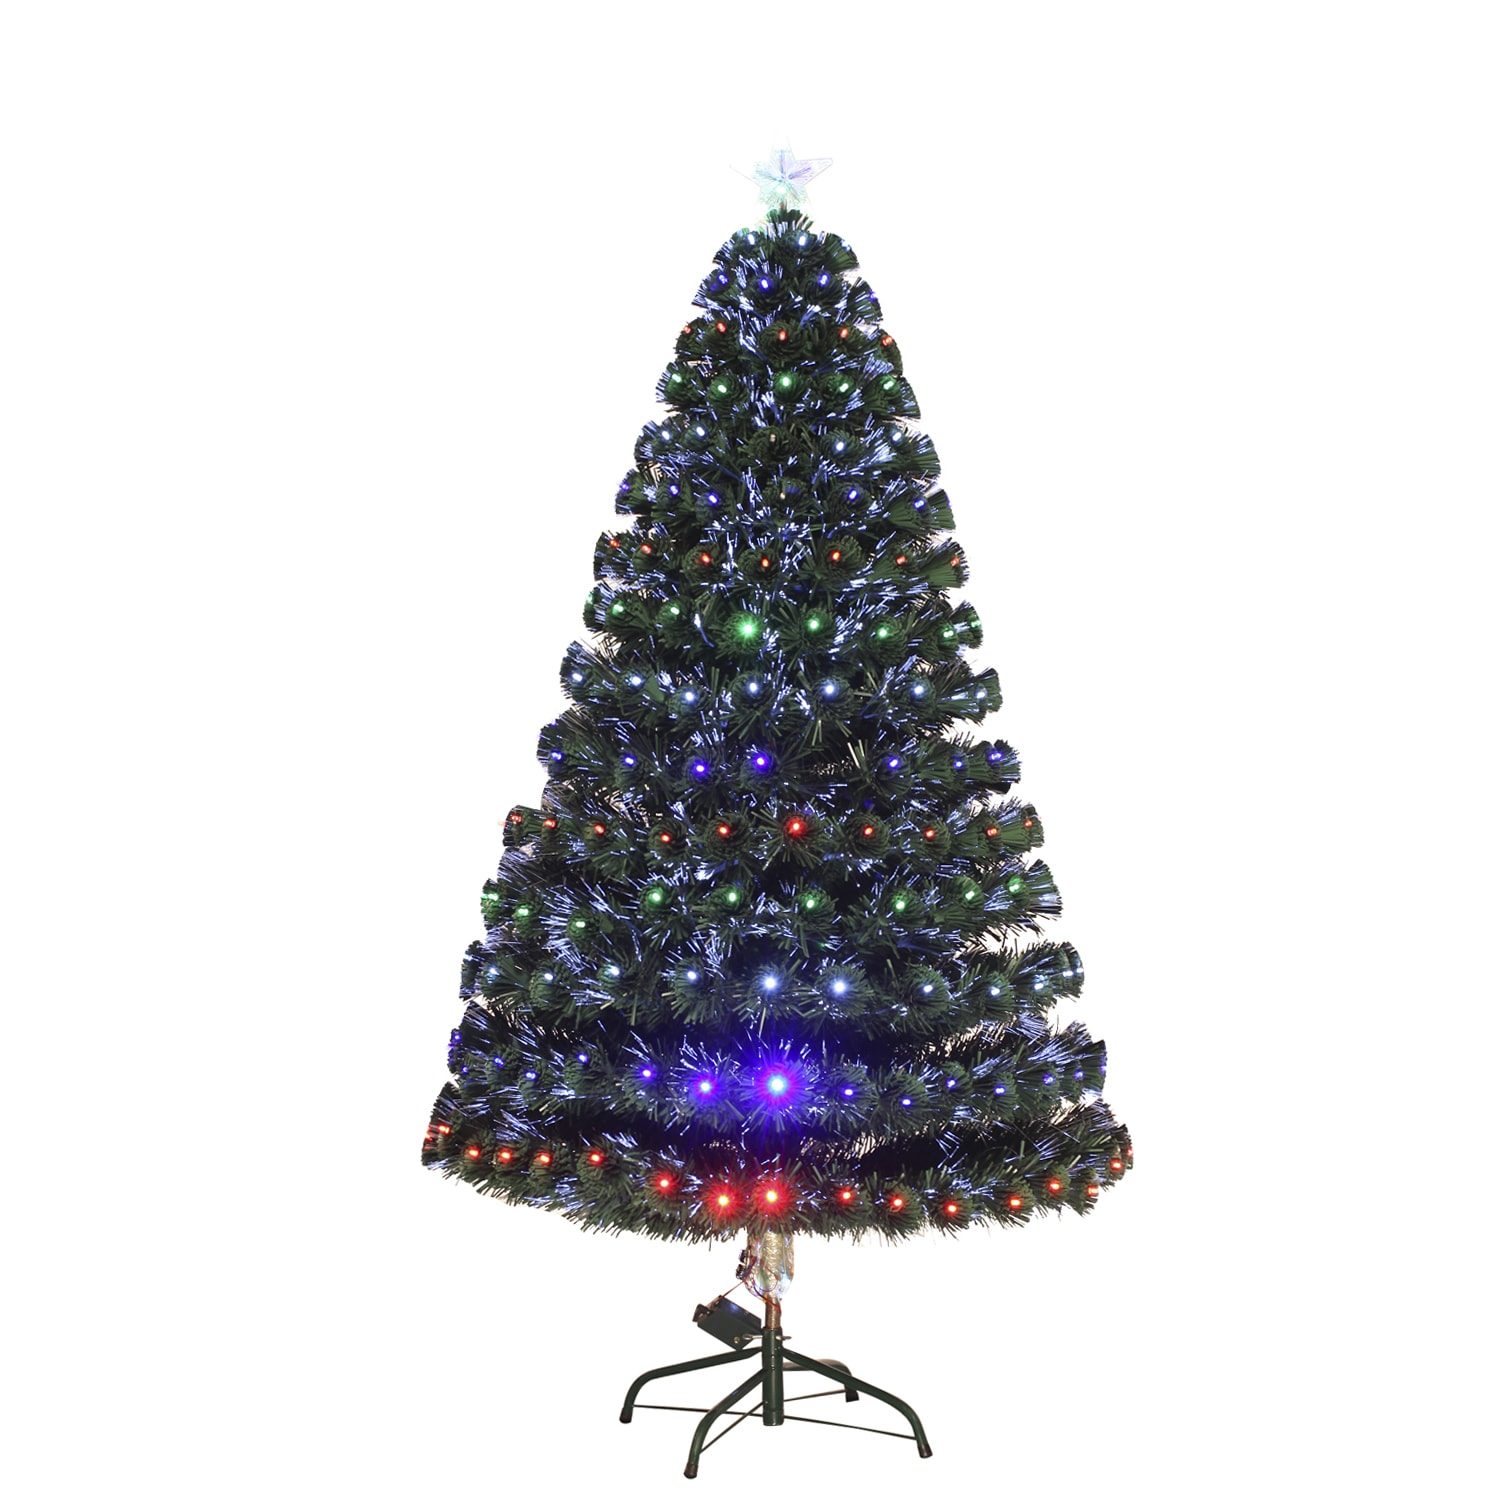 new style 7b2b8 3ef7d HomCom 3 Foot Tall Pre-Lit Artificial Fiber Optic LED Lit Christmas Tree  Holiday